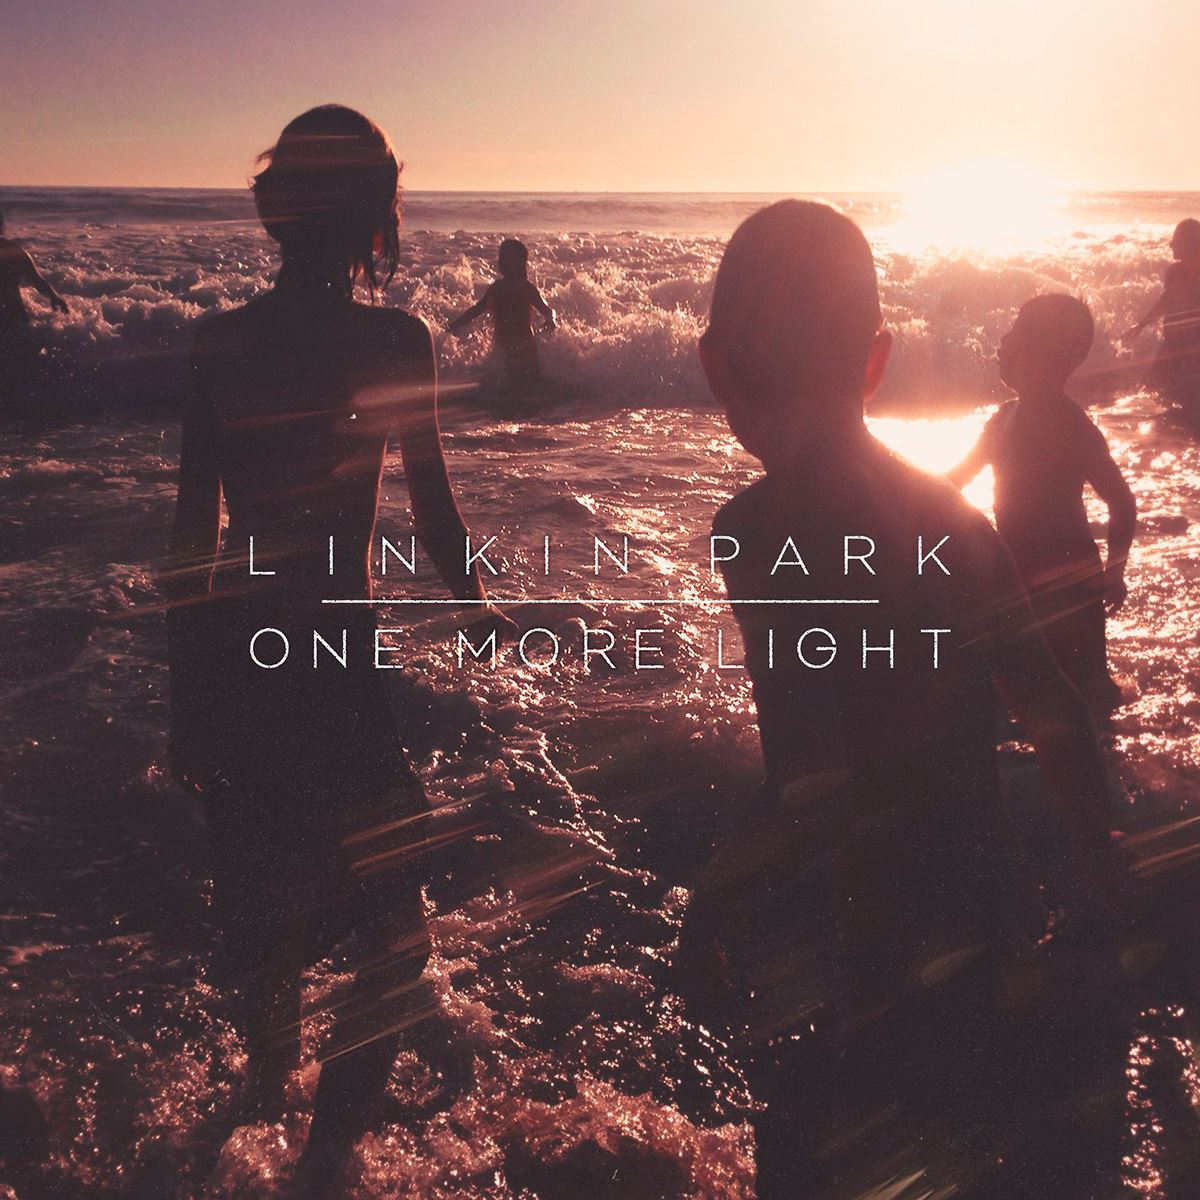 CD Linkin Park One More Light-Explicit Content